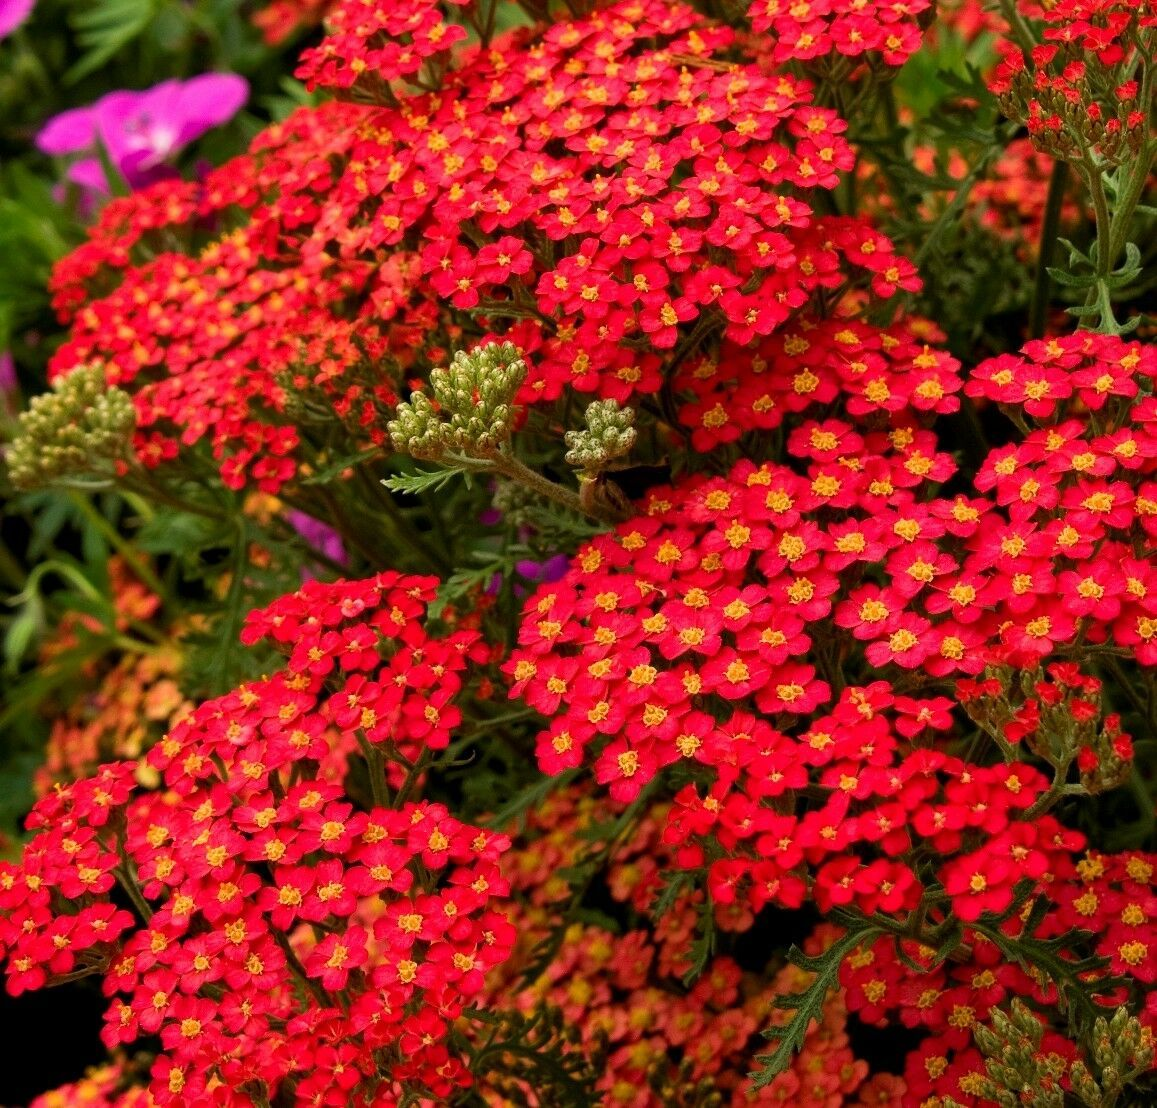 Primary image for SHIP From US, 2 oz 360K Seeds Red Yarrow Perennial Herb, DIY Herb Seeds ZJ01